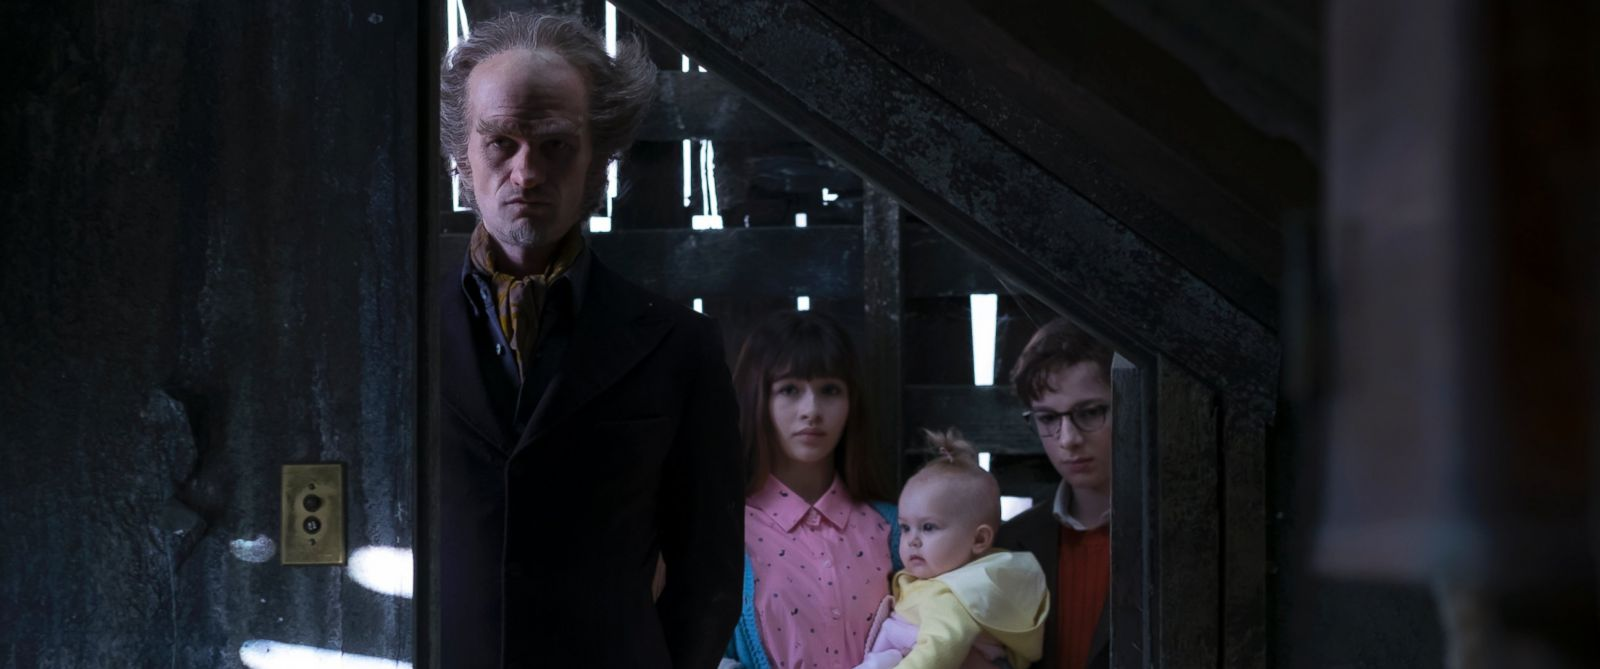 "PHOTO: Neil Patrick Harris is pictured here in a still as Count Olaf from the Netflix series ""A Series of Unfortunate Events"" with co-stars Malina Weissman and Louis Hynes."